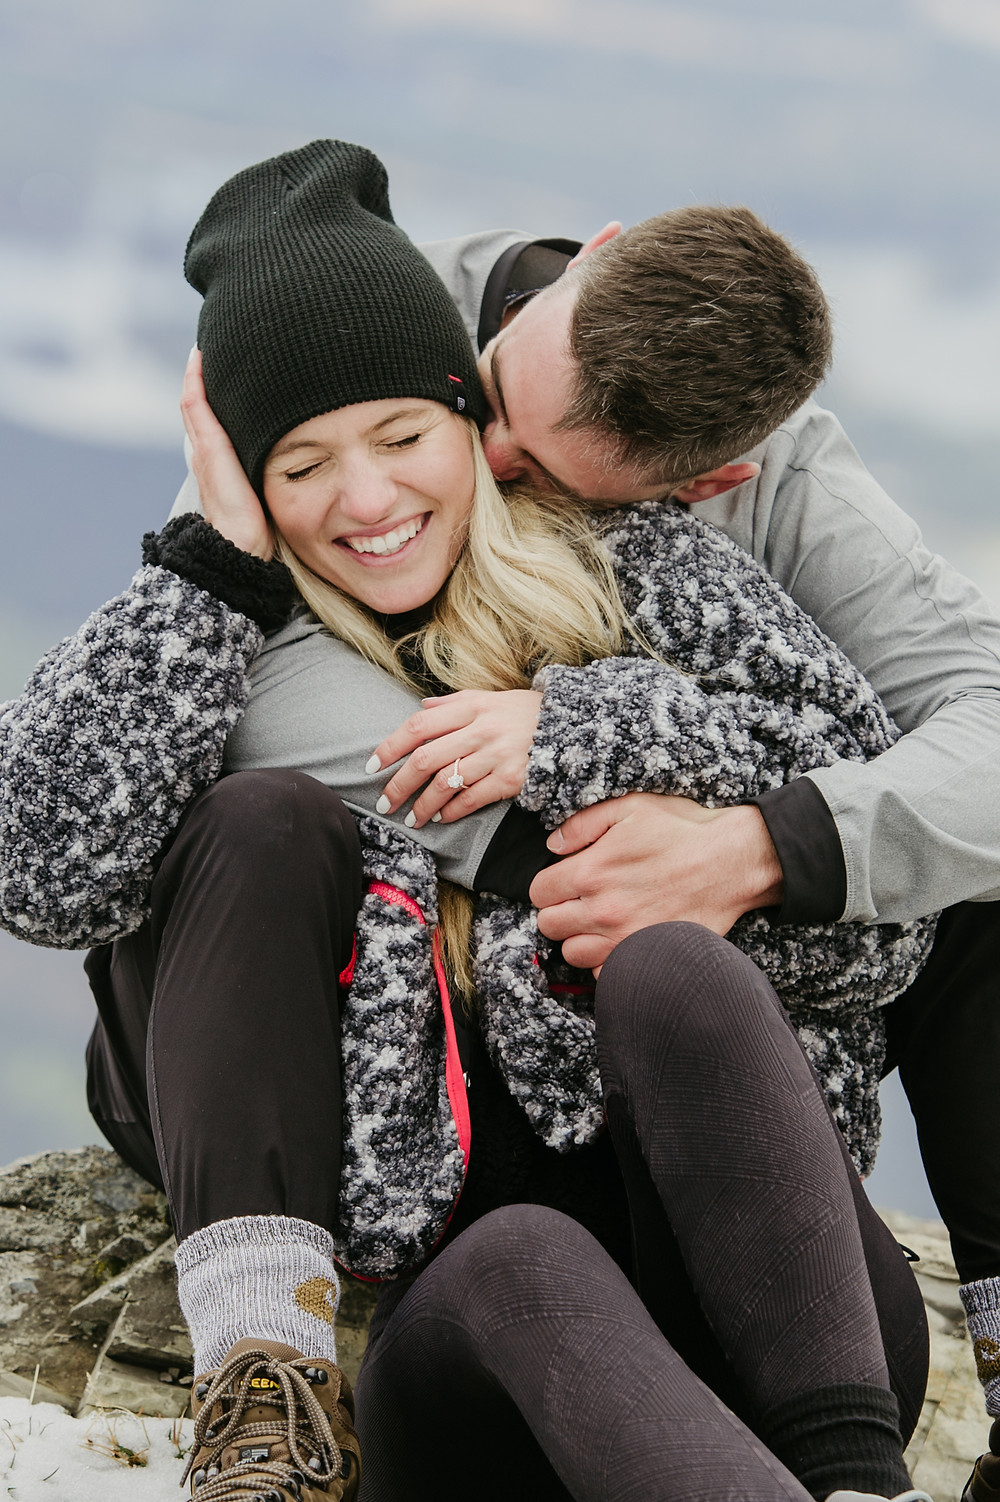 man and woman sitting closely together while man kisses woman and she is laughing